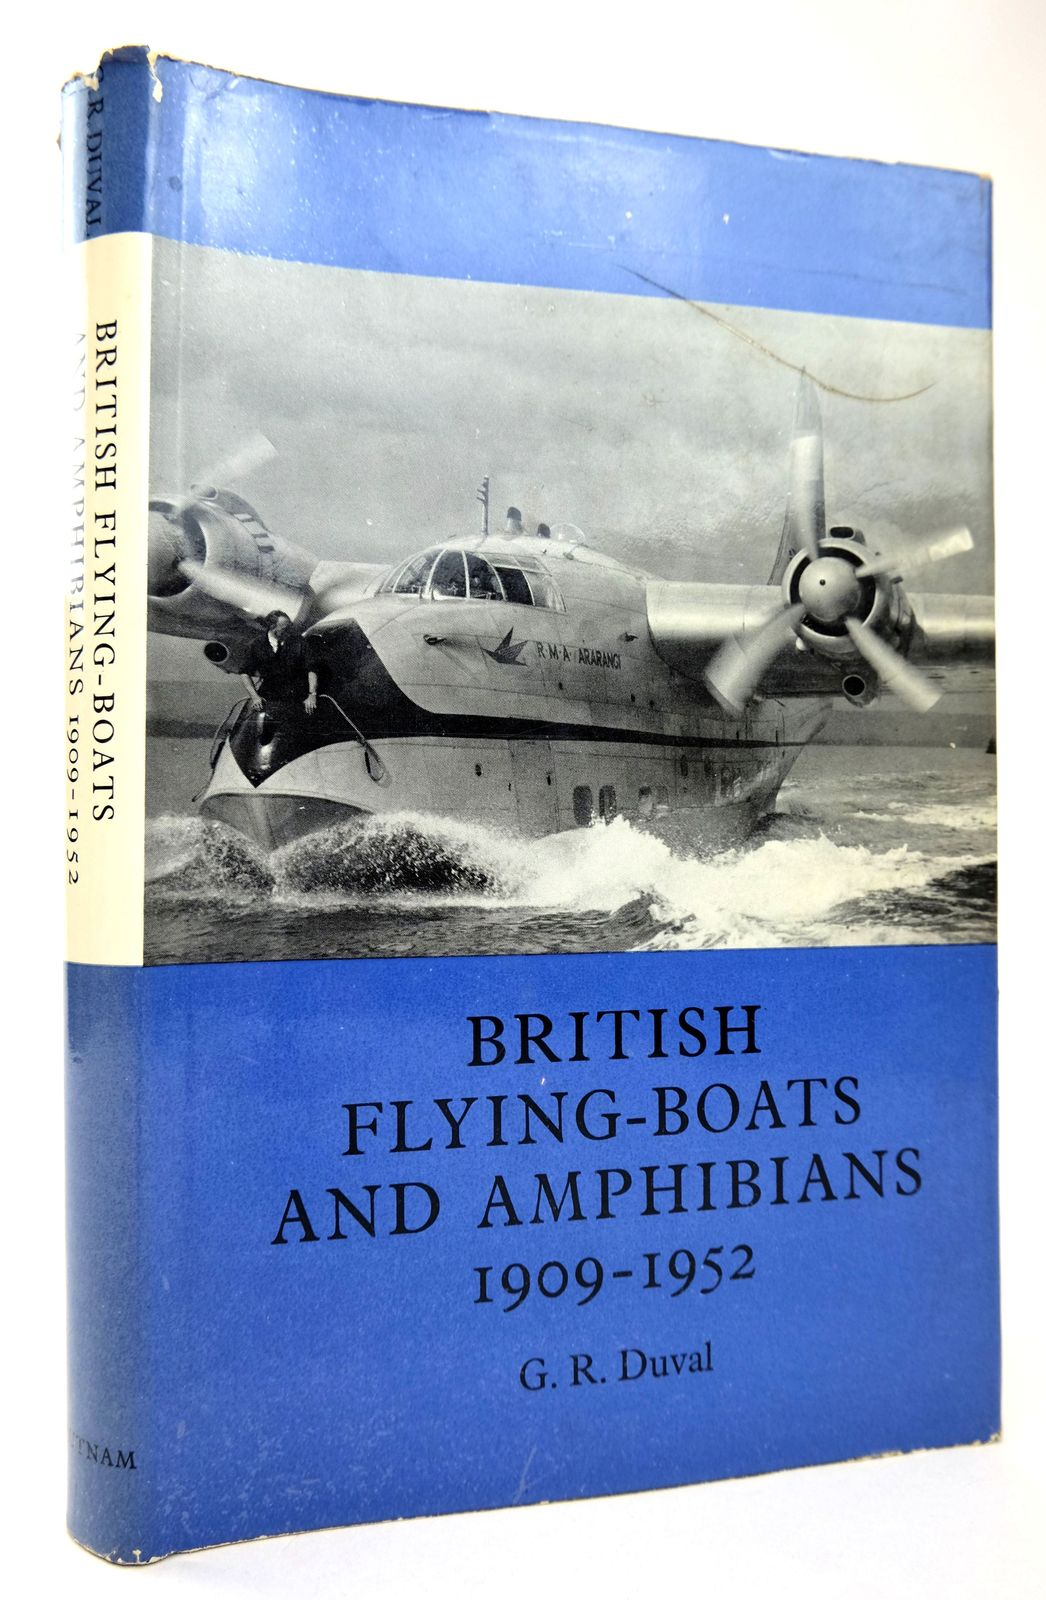 Photo of BRITISH FLYING-BOATS AND AMPHIBIANS 1909-1952- Stock Number: 1818735